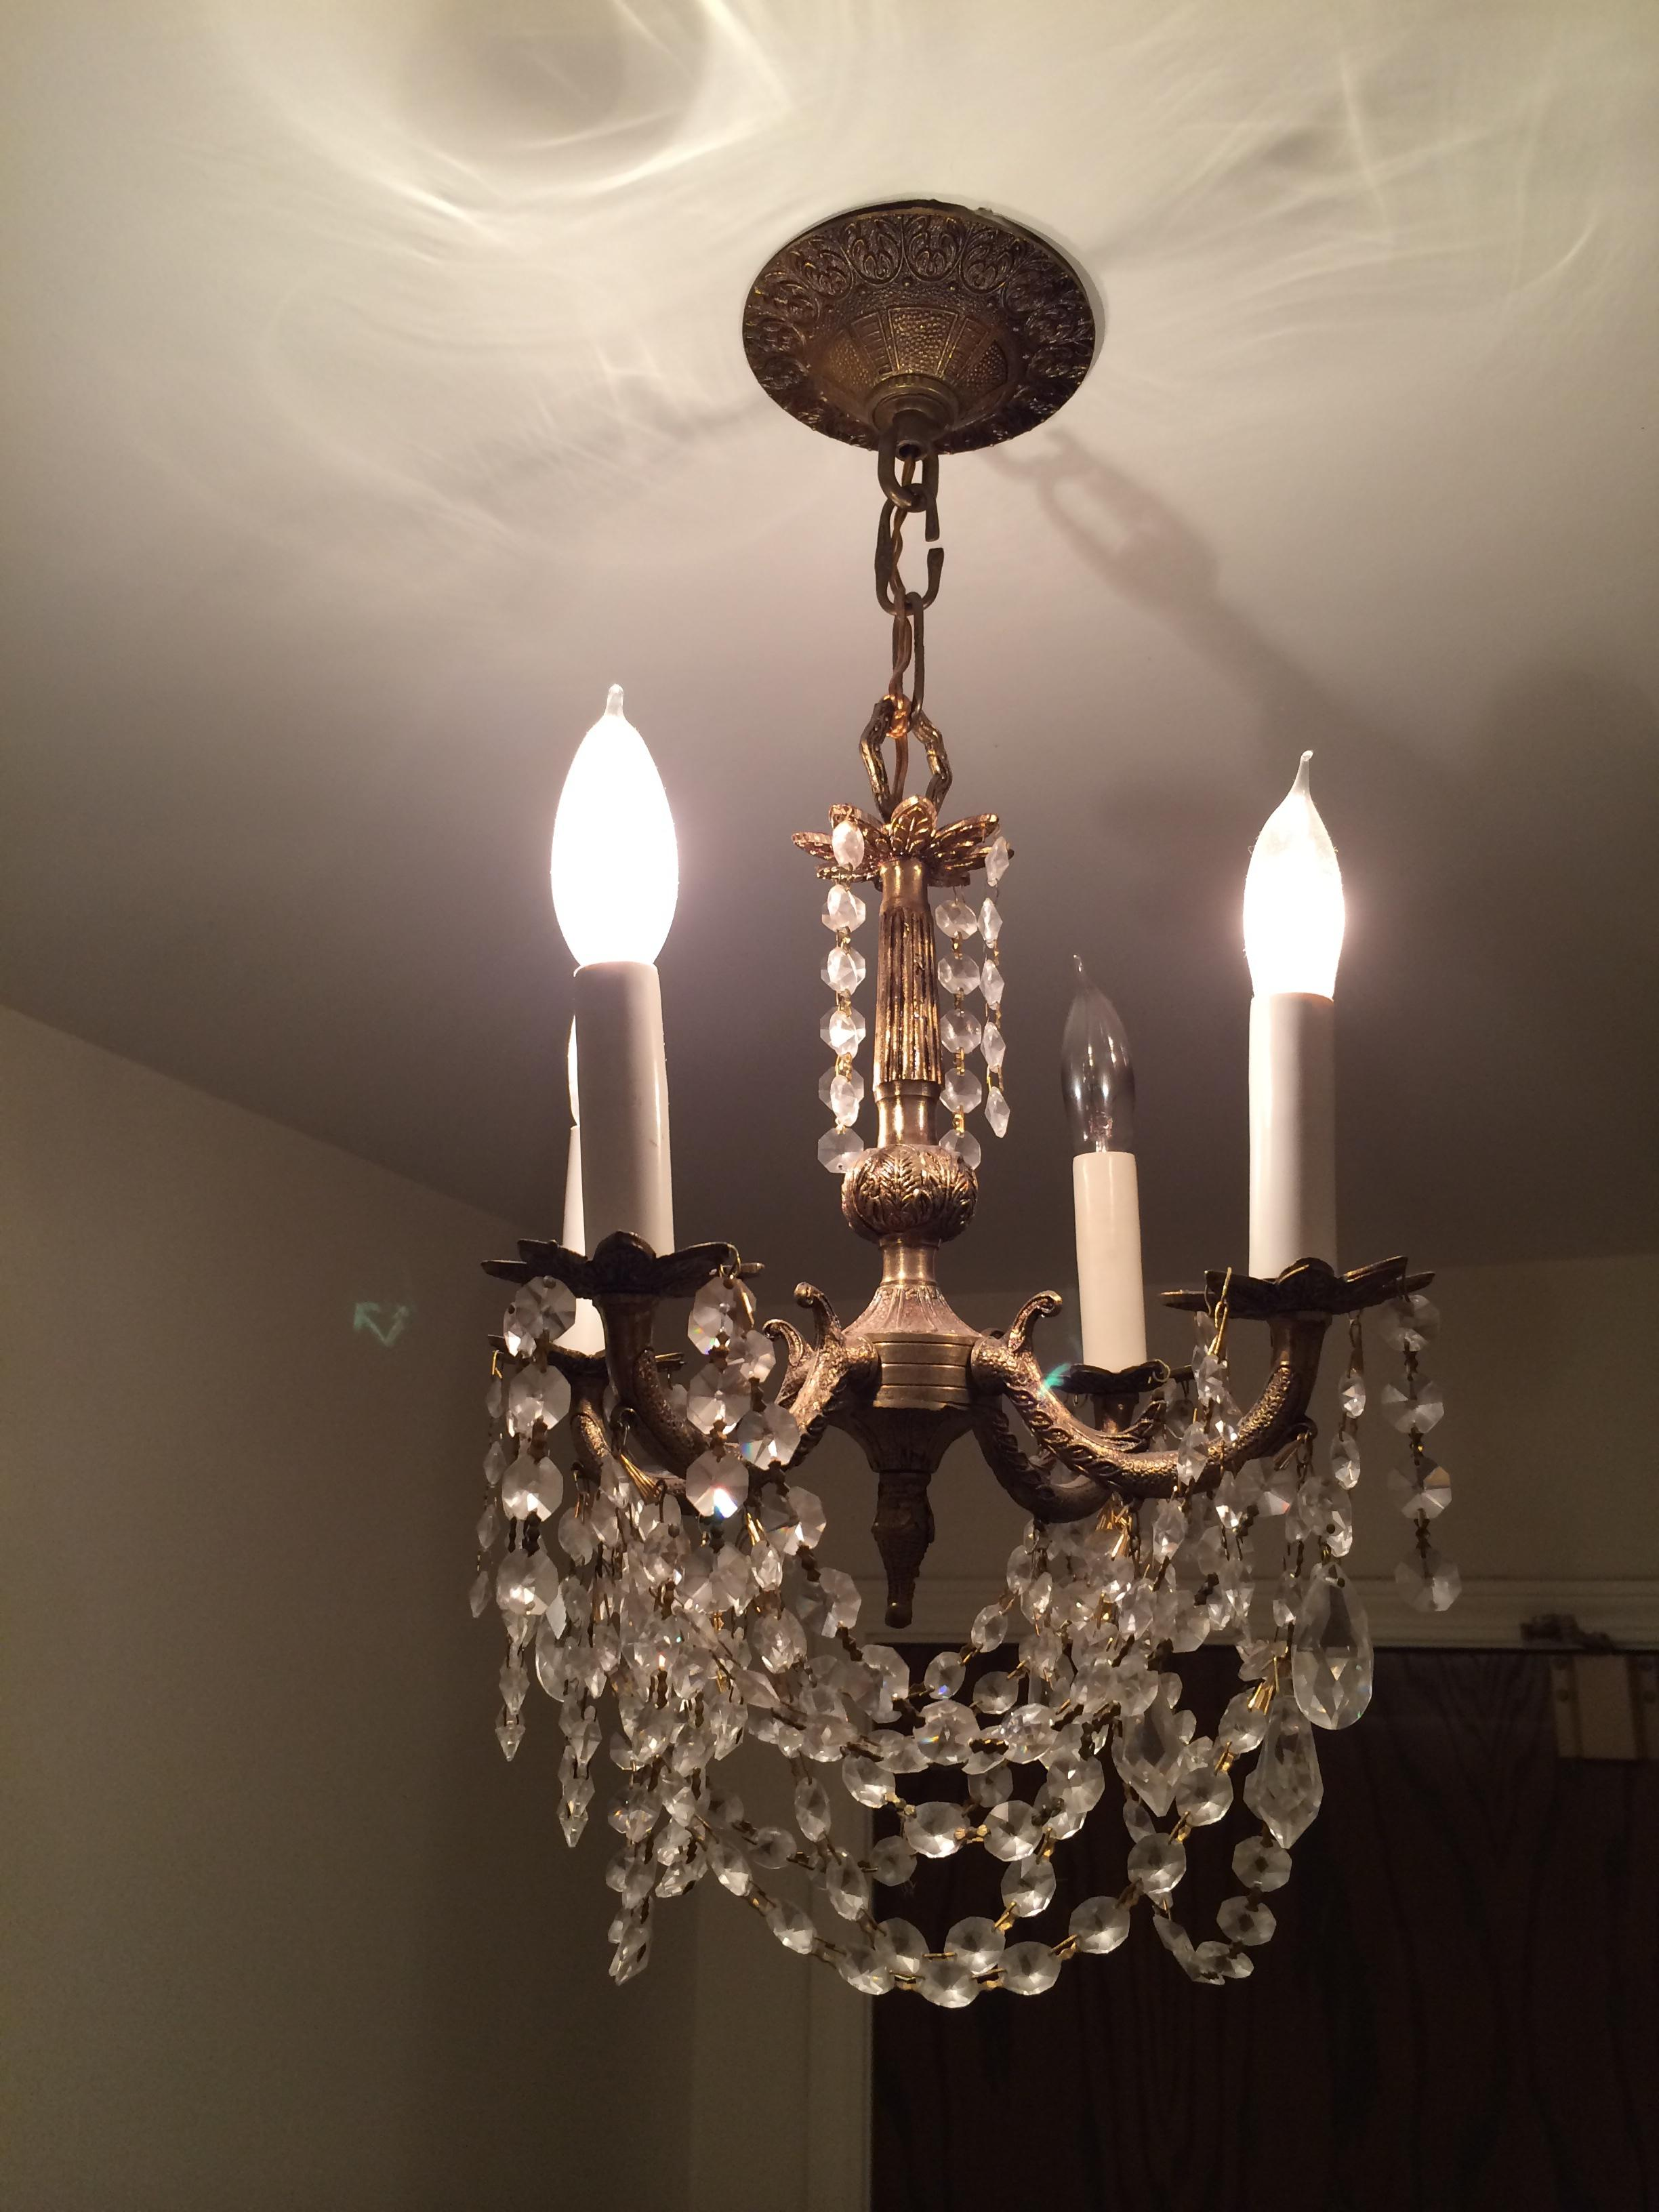 Small Antique Brass And Chrystal Chandelier Antique Appraisal Instappraisal